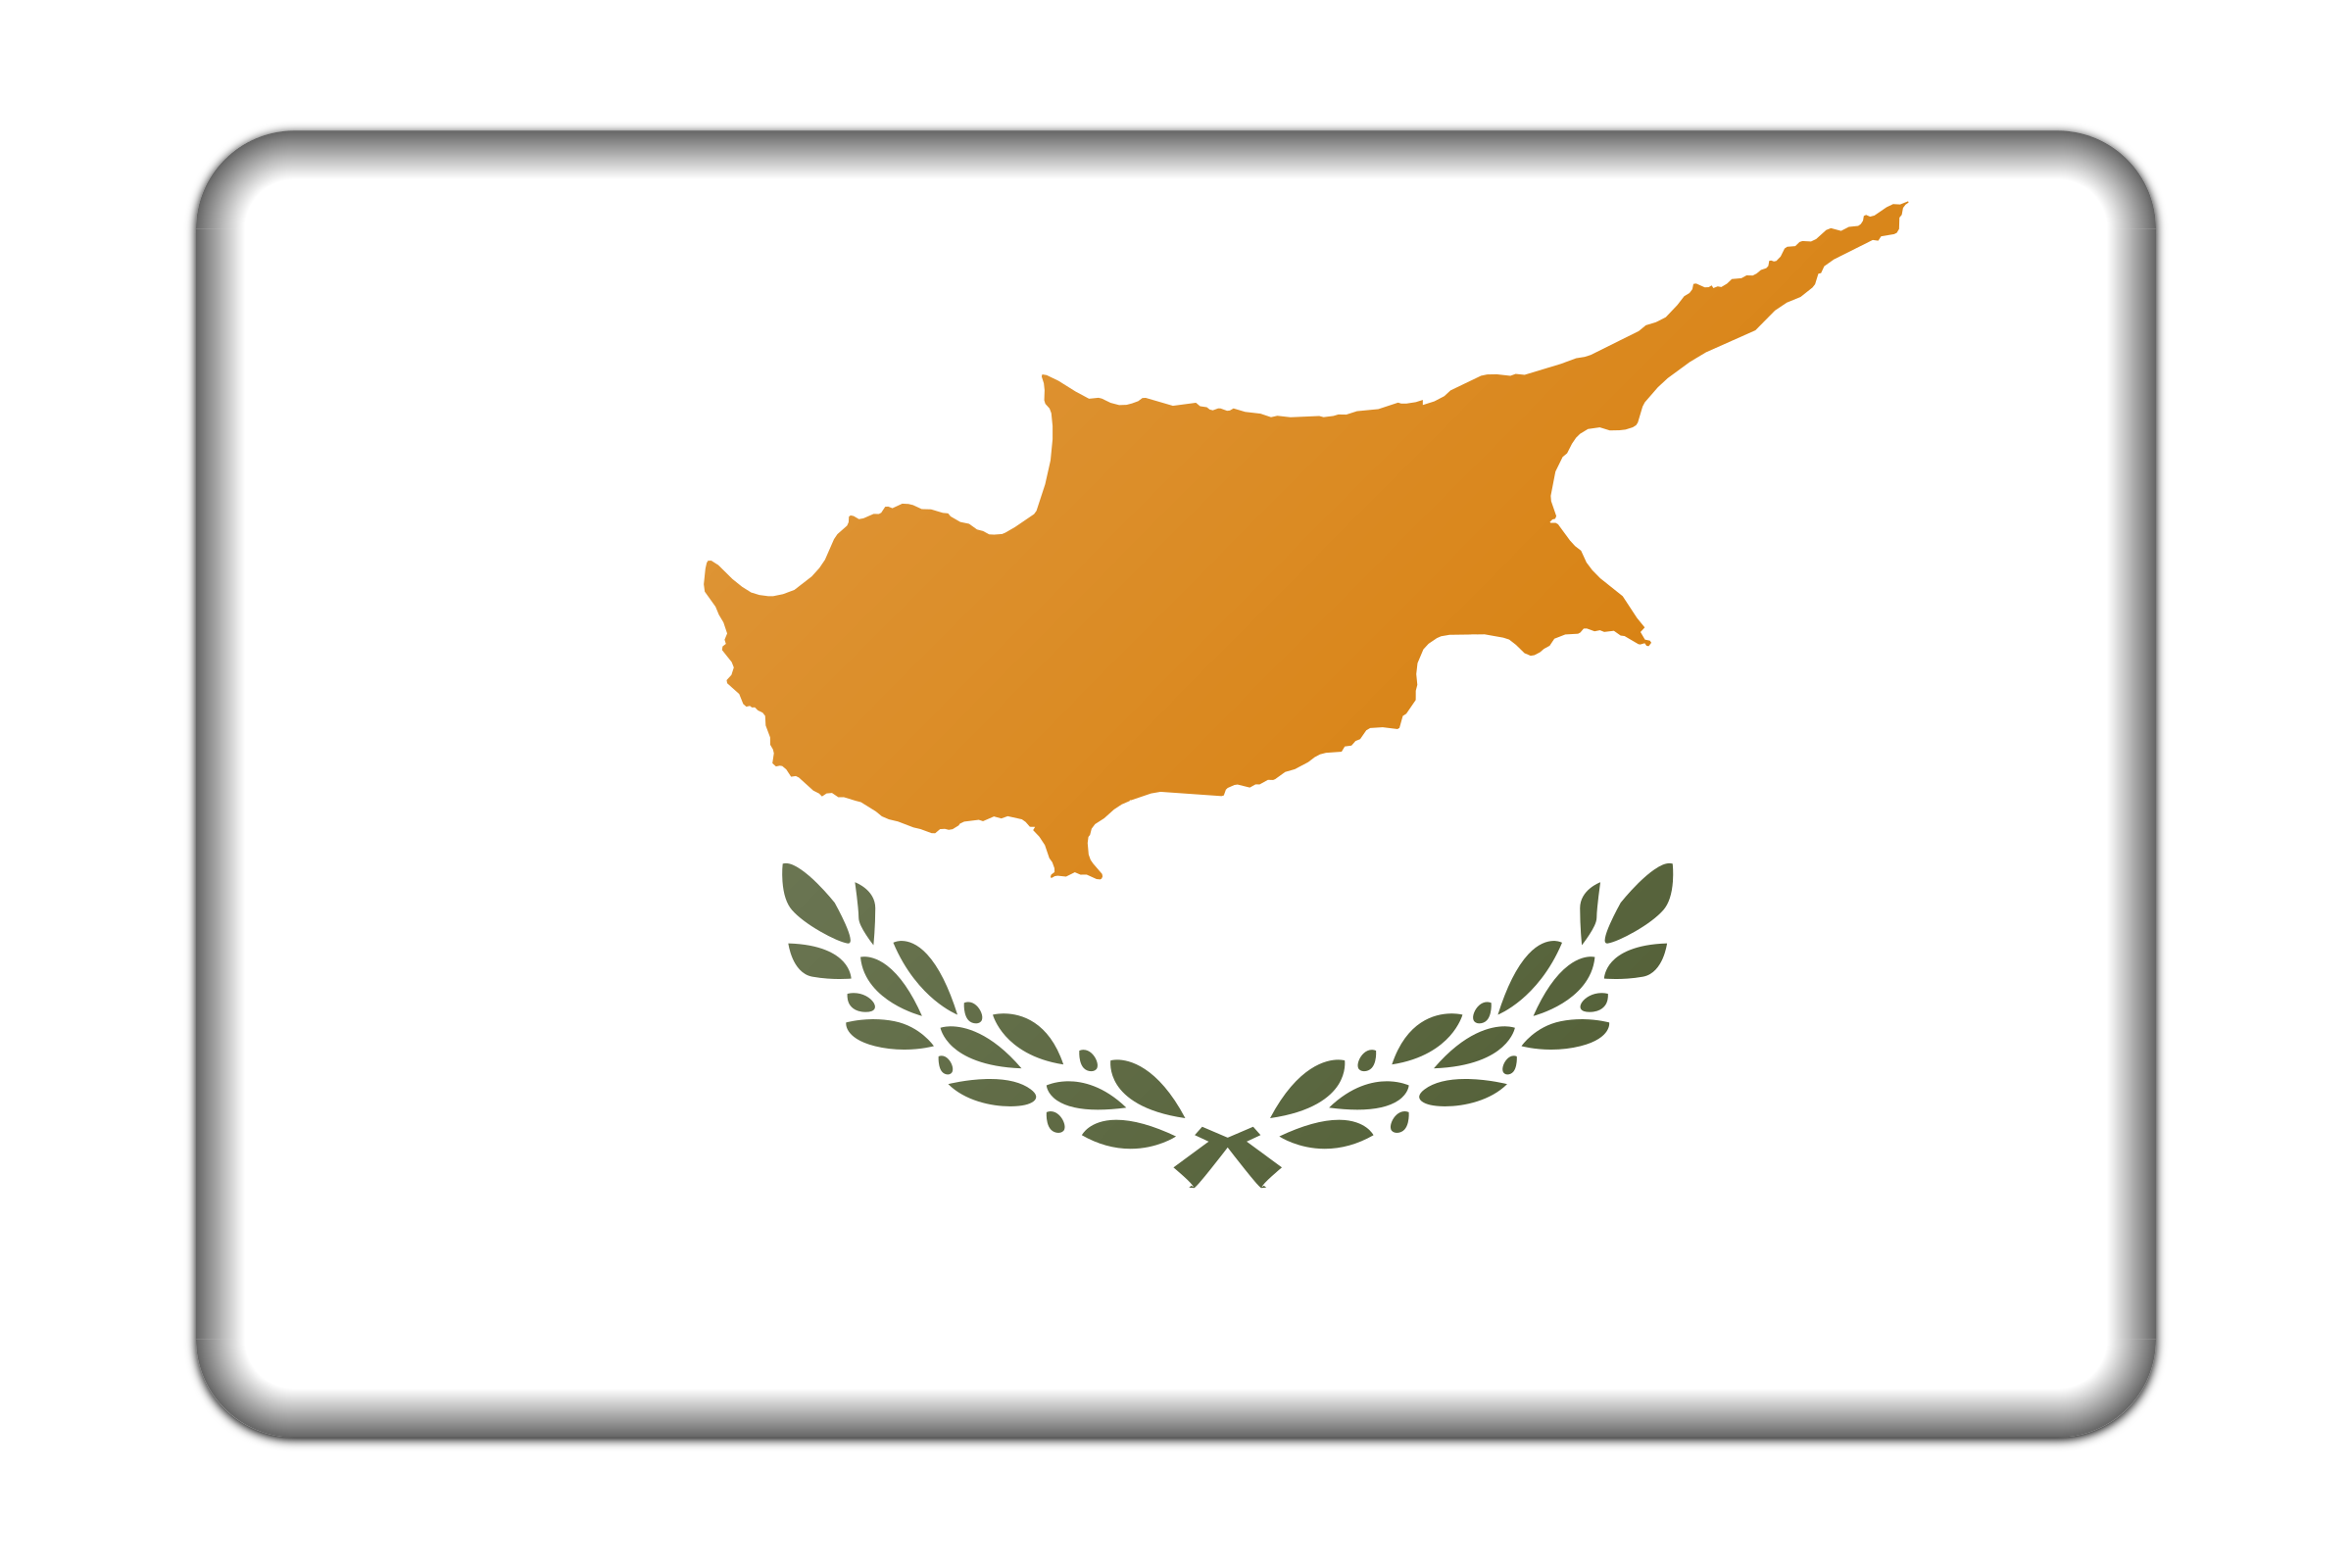 Cyprus flag (bevelled) by Firkin